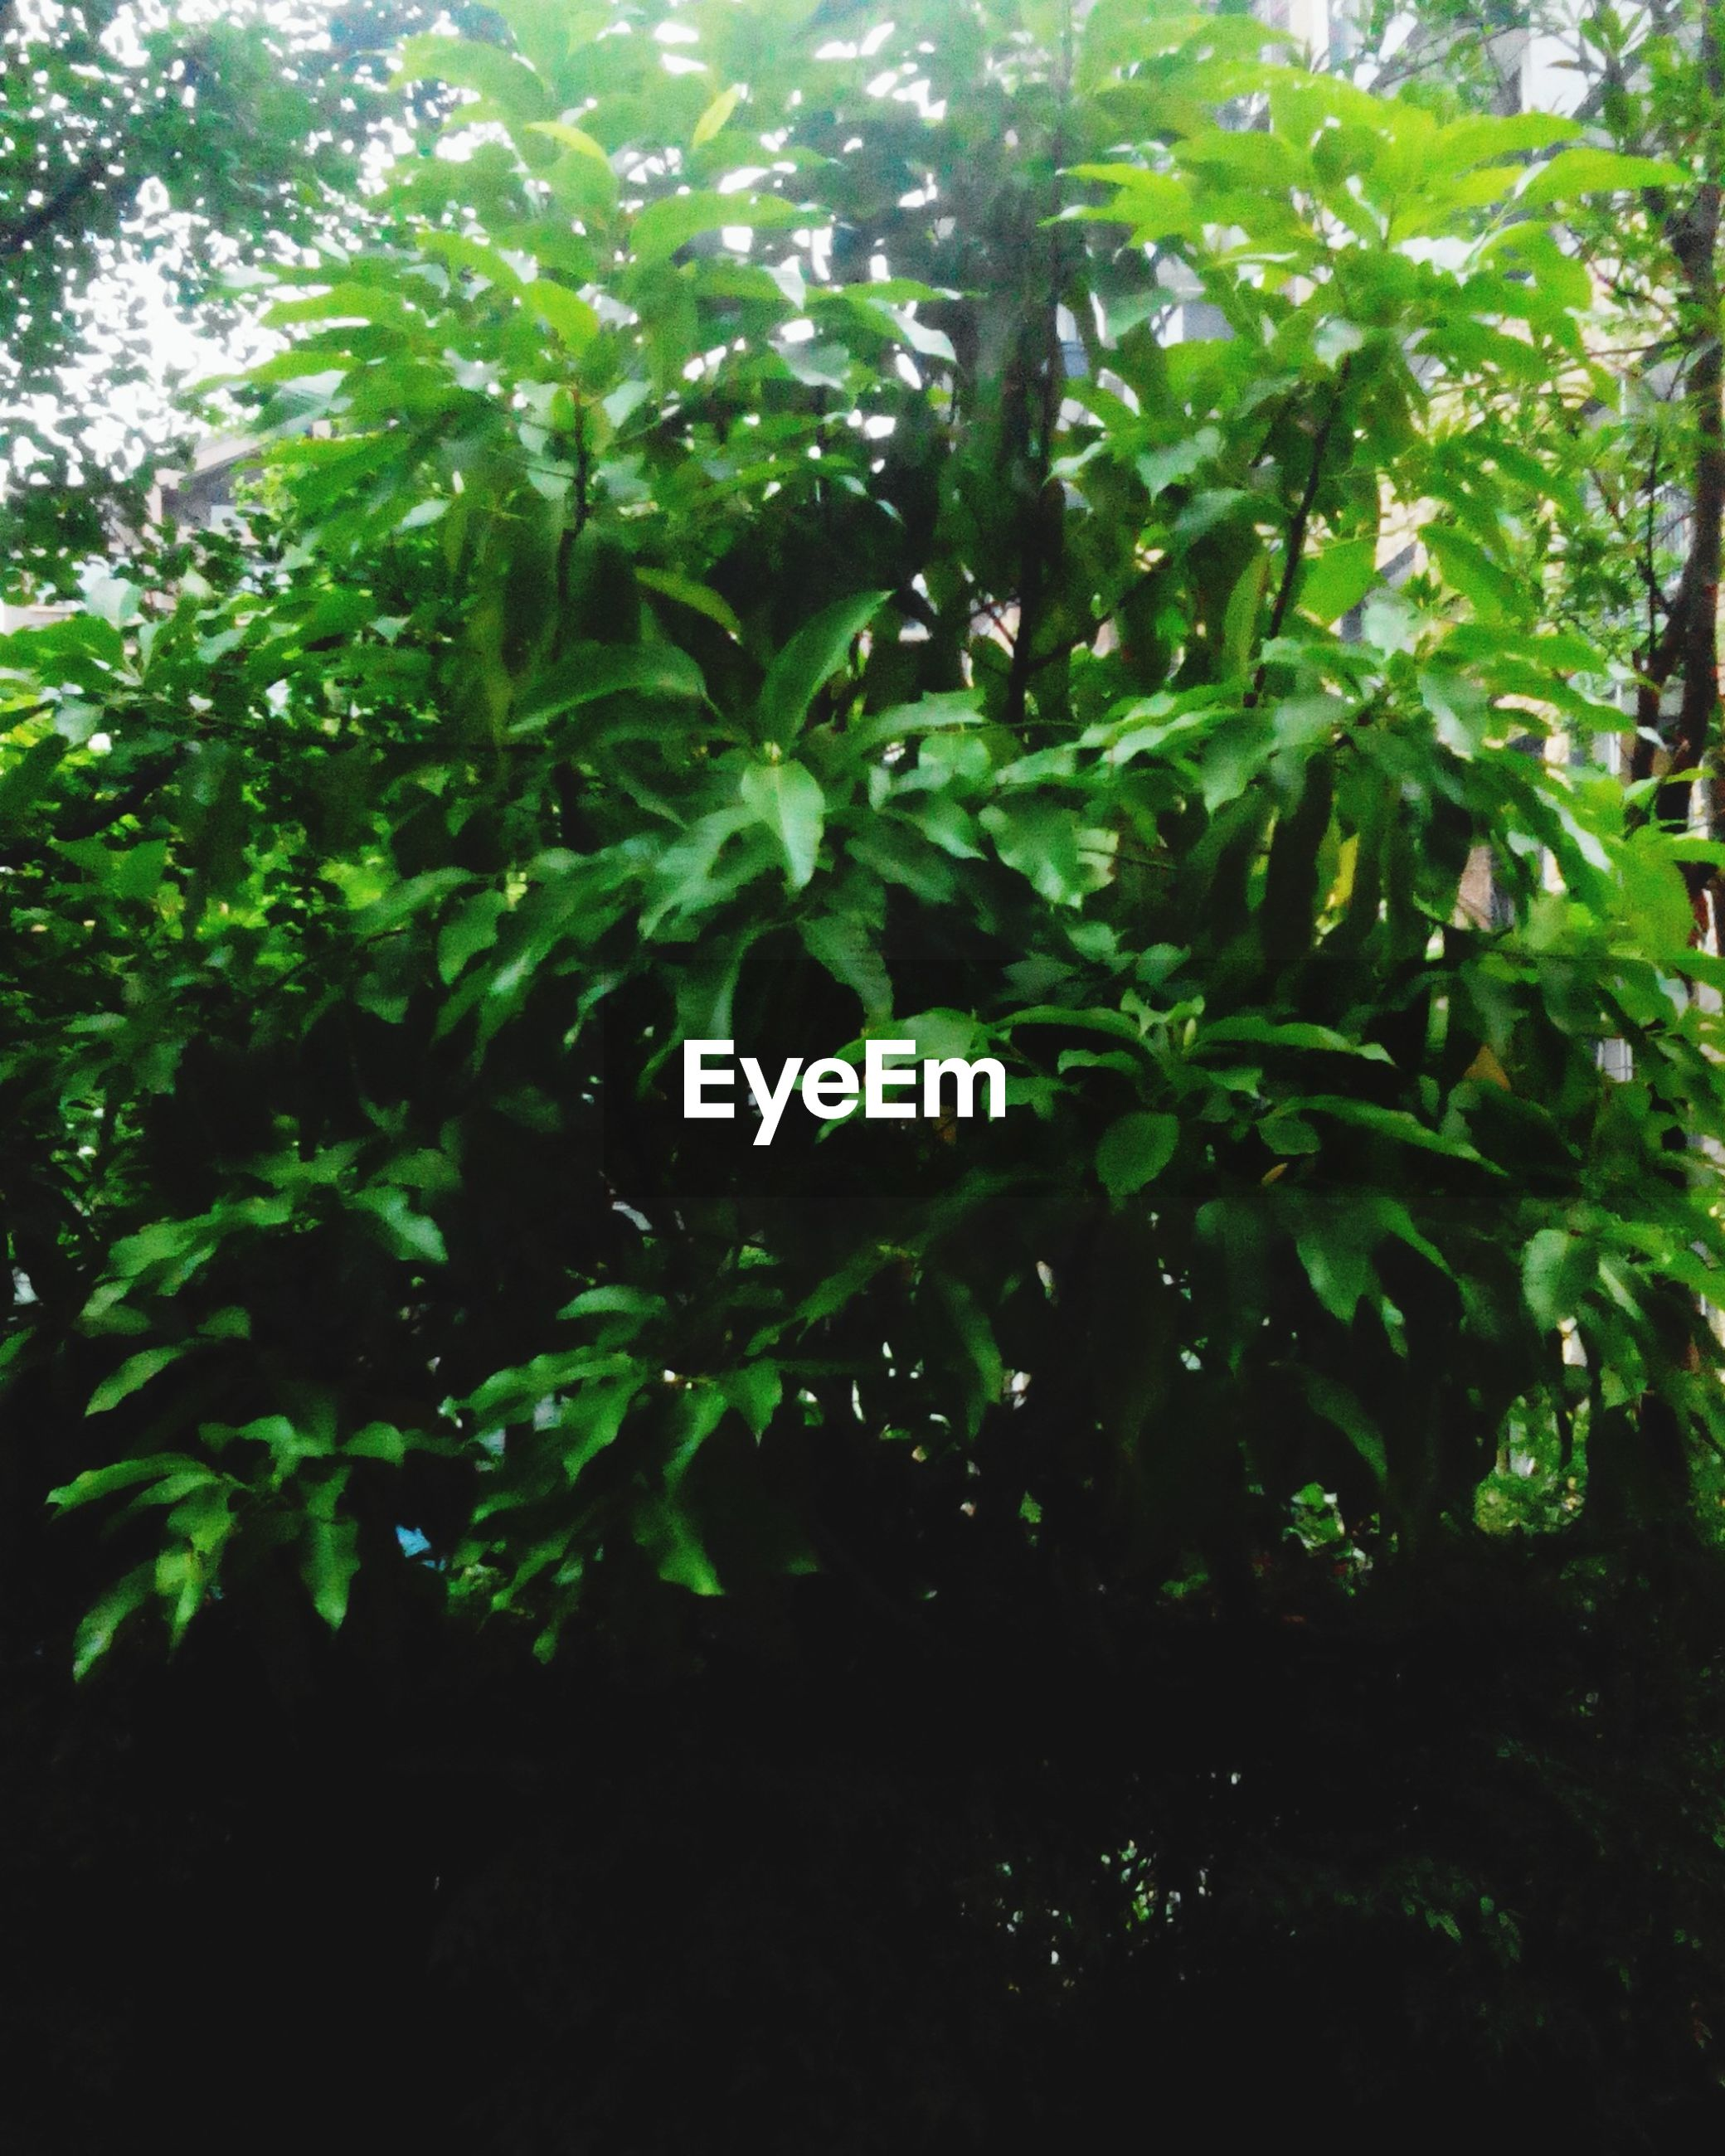 growth, tree, leaf, green color, nature, branch, tranquility, beauty in nature, plant, low angle view, lush foliage, sunlight, day, outdoors, forest, no people, growing, backgrounds, full frame, green